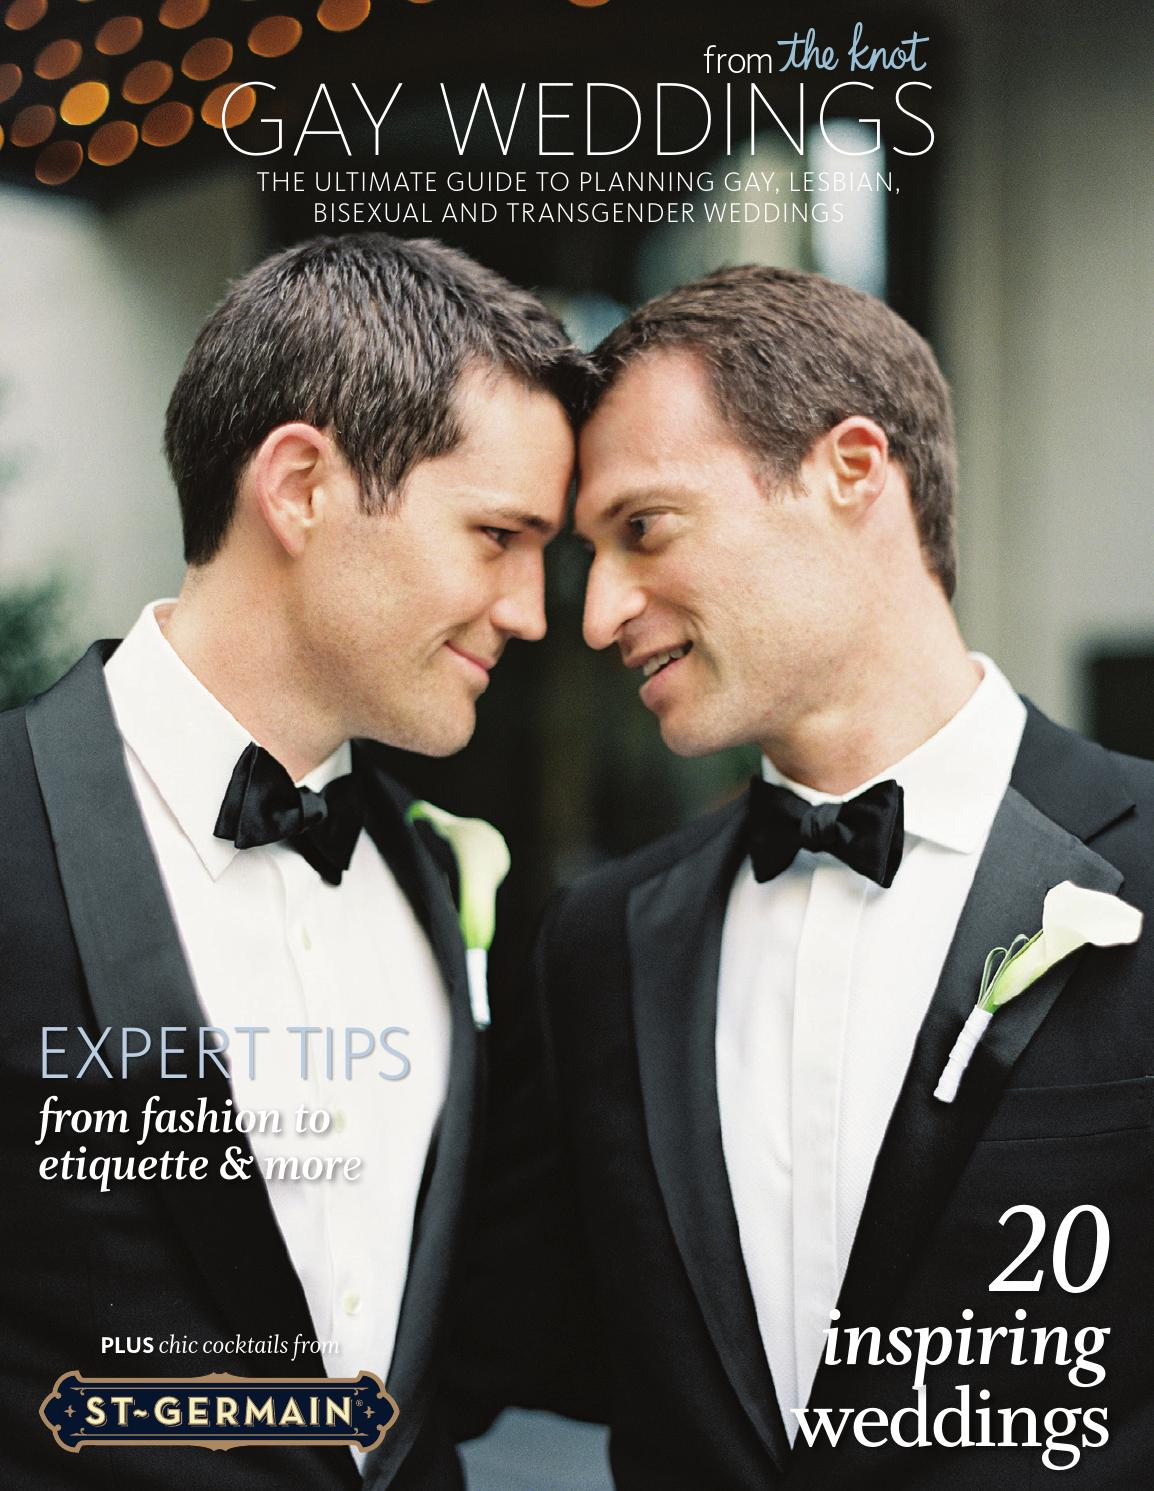 Gay Lesbian Weddings - The Knot - Your Personal Wedding